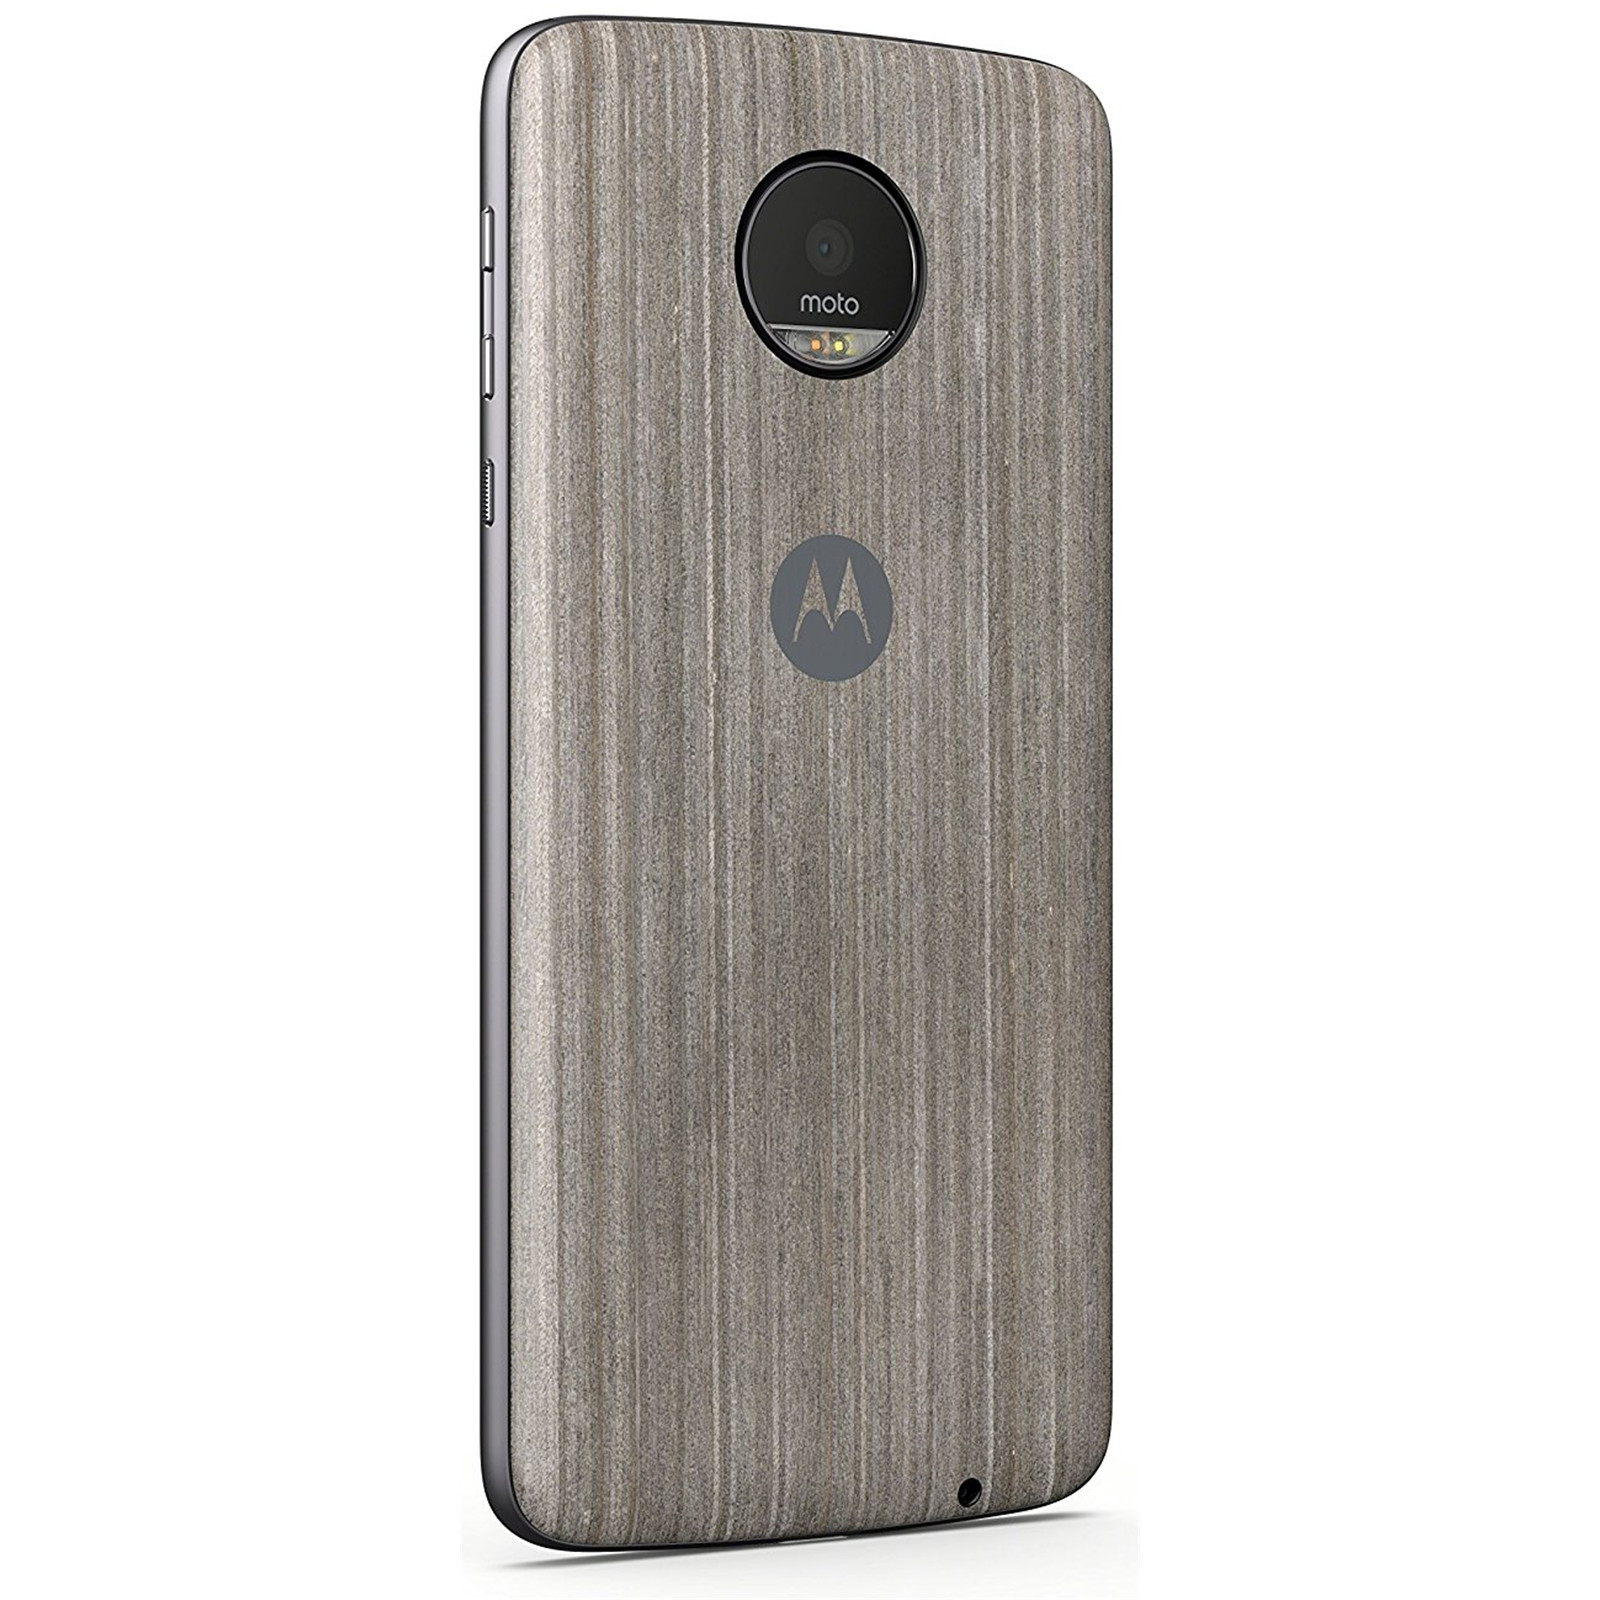 MOTOROLA STYLE CAP SILVER OAK Real wood Compatible with the Moto Z Family of phones